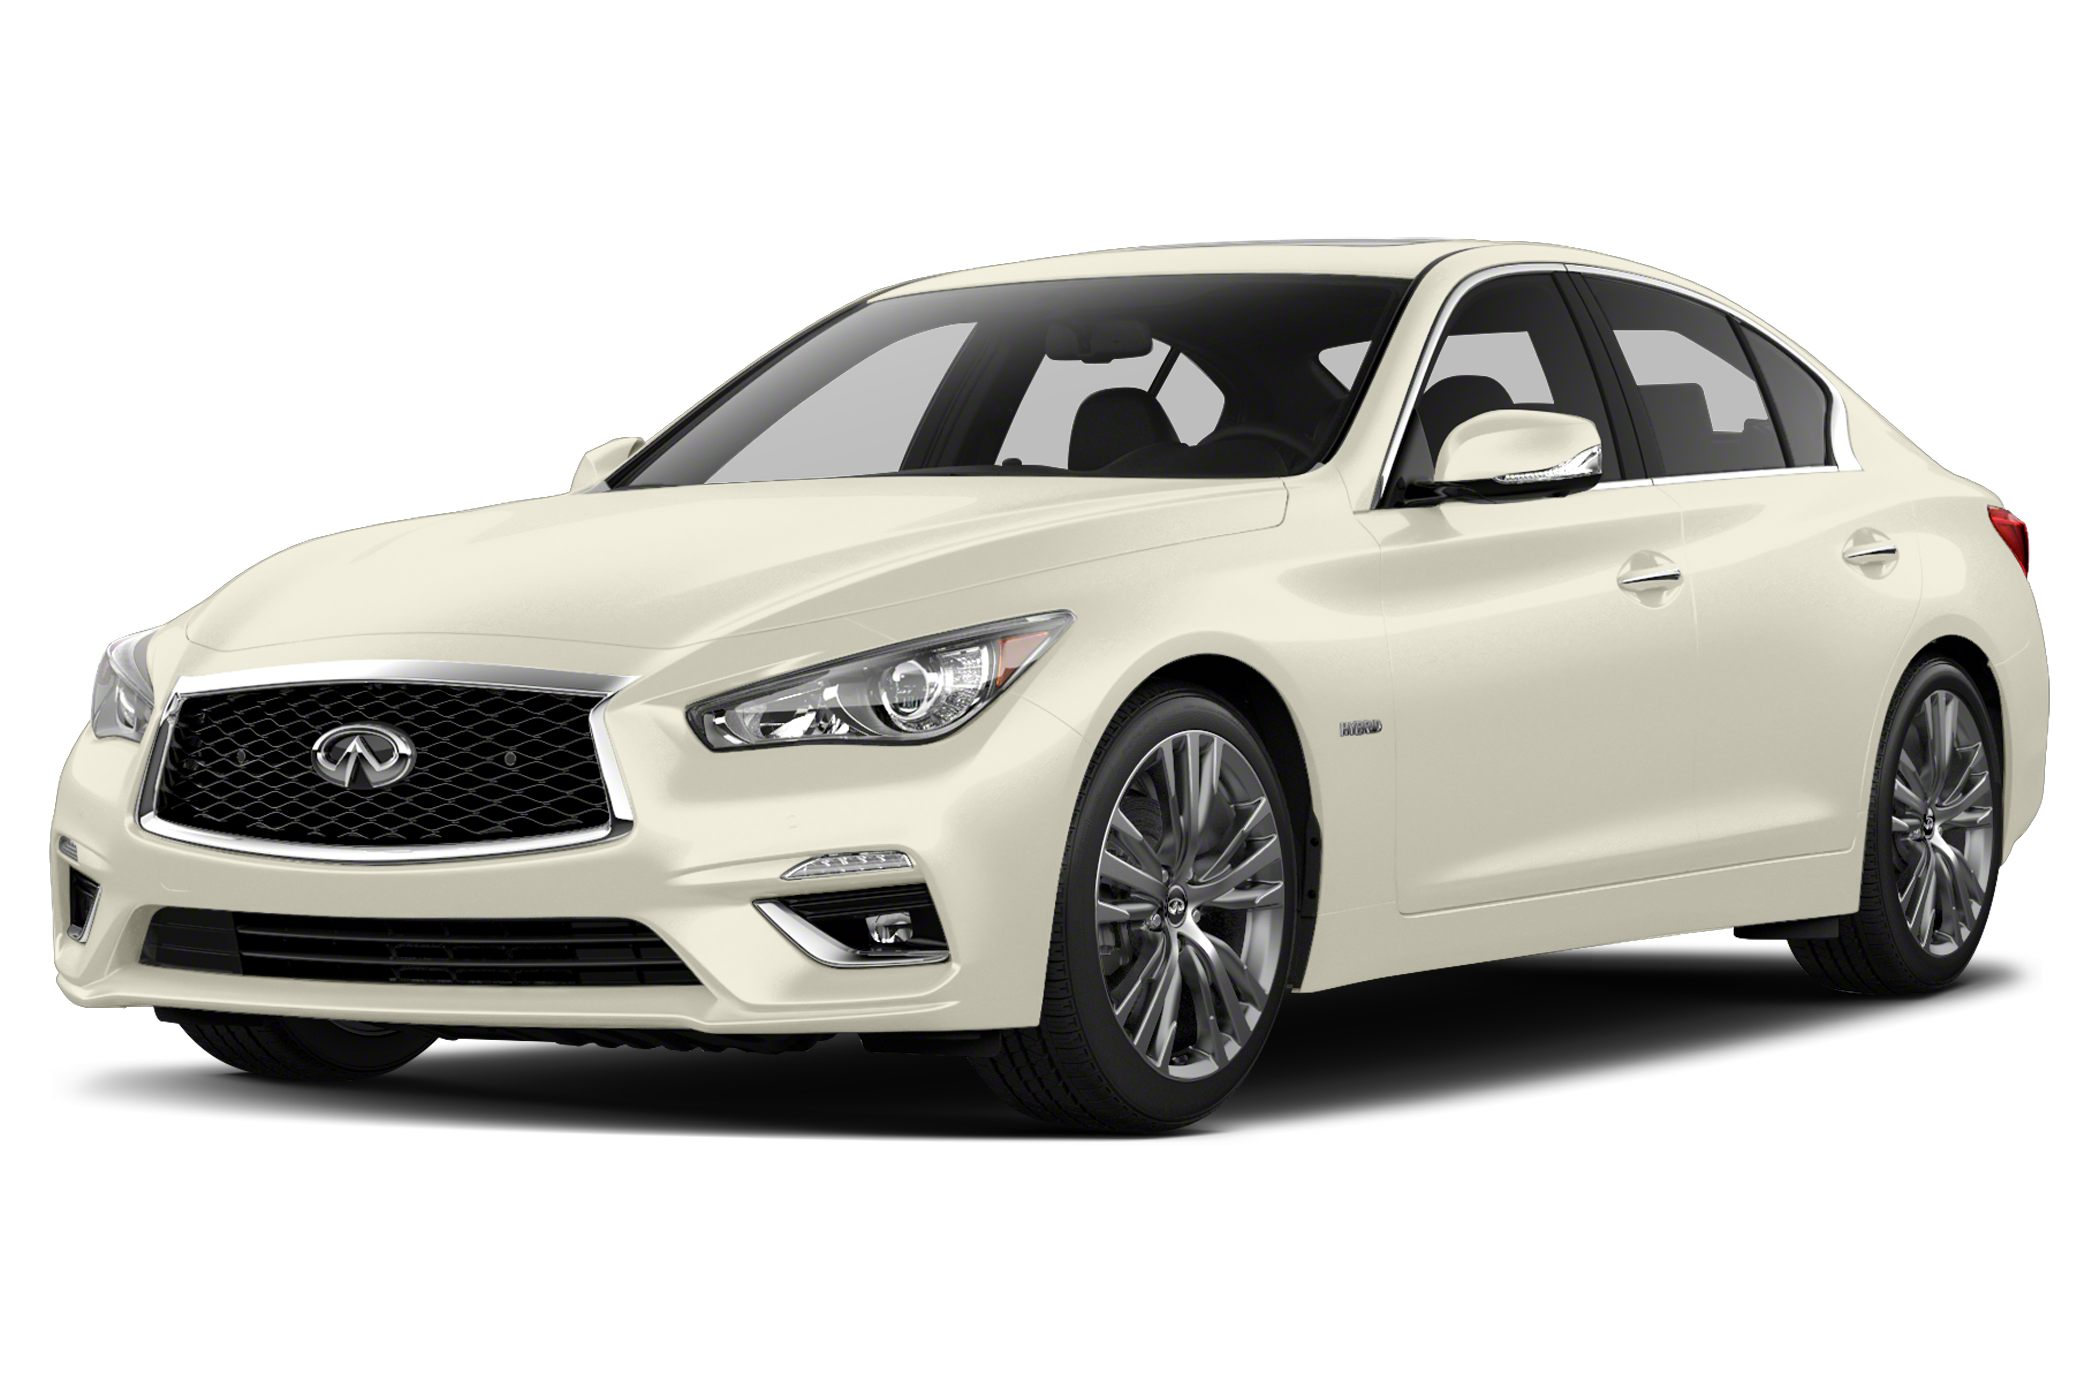 2014 infiniti q50 autoblog. Black Bedroom Furniture Sets. Home Design Ideas